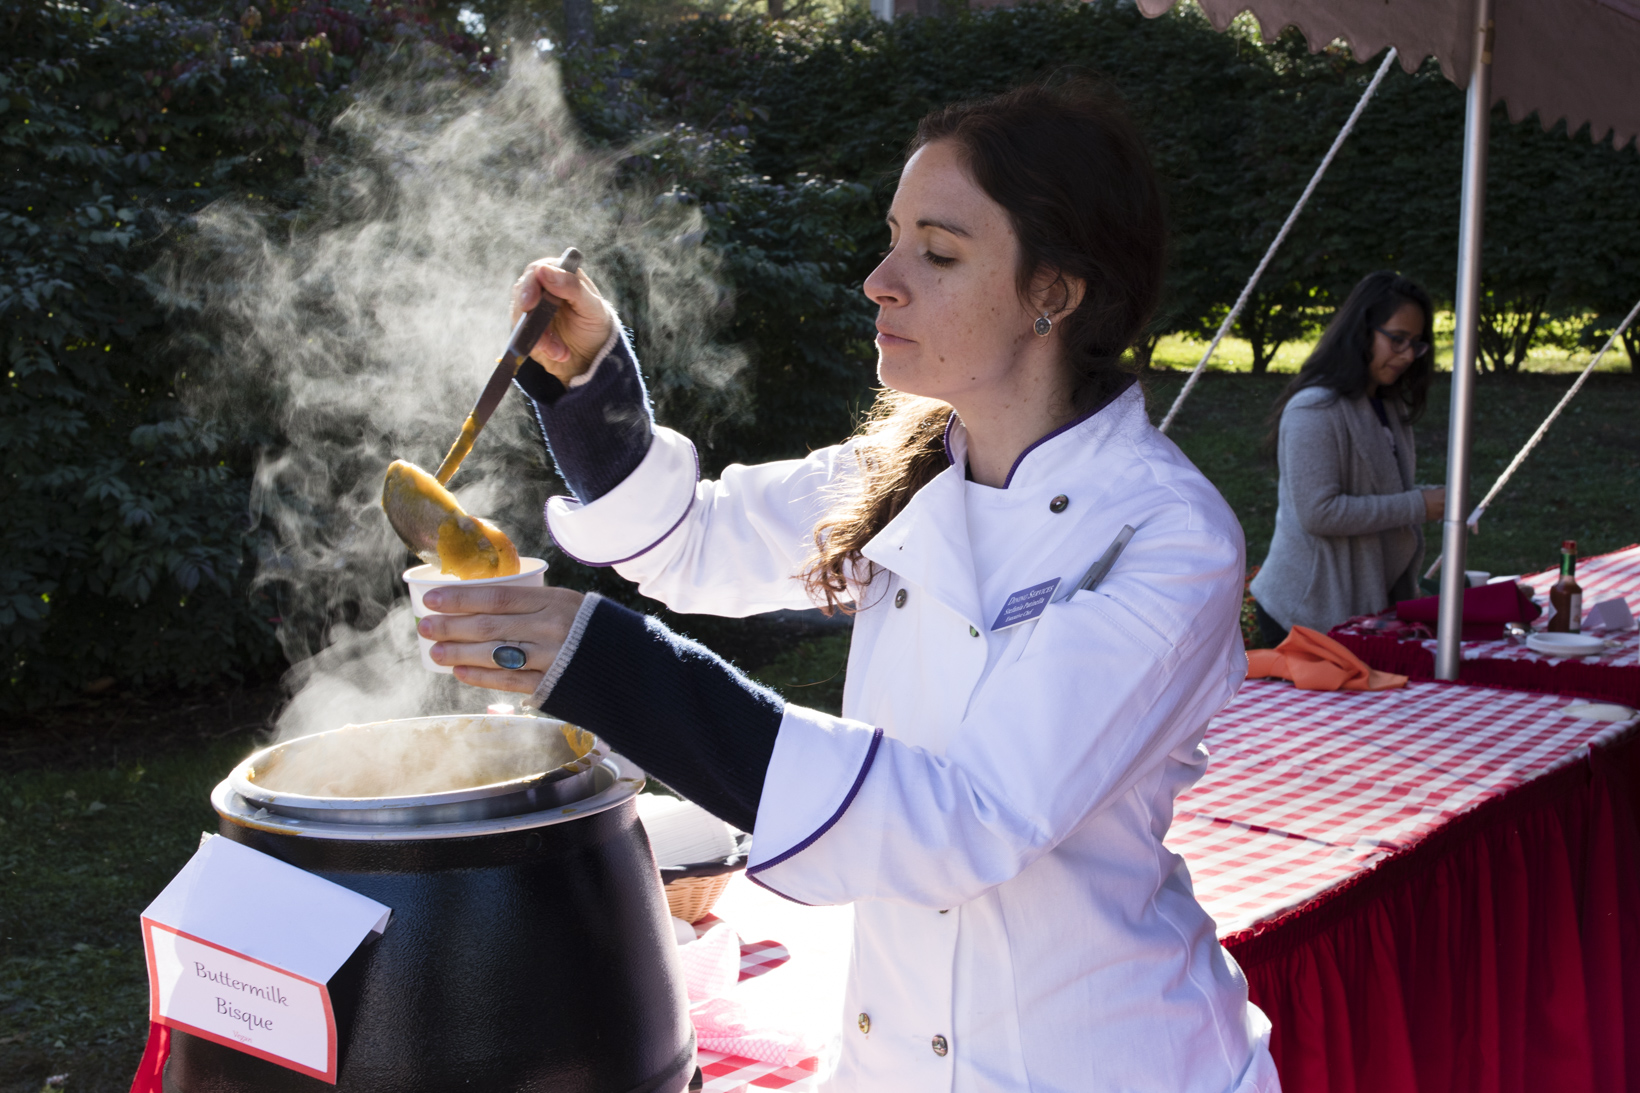 Stefania Patinella, the executive chef with the College's Dining Services